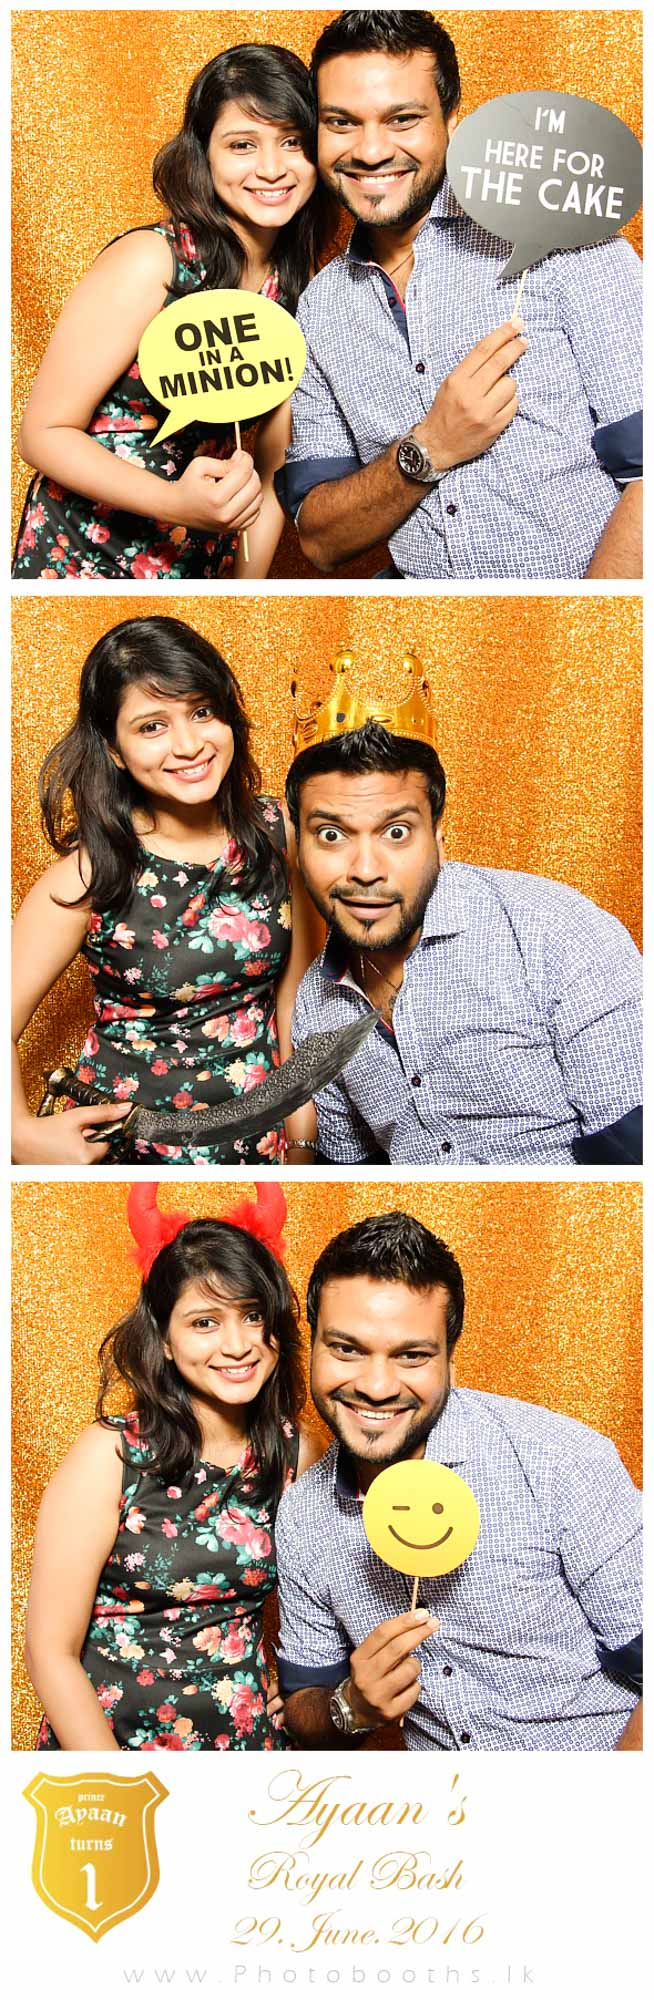 photo-booth-pictures